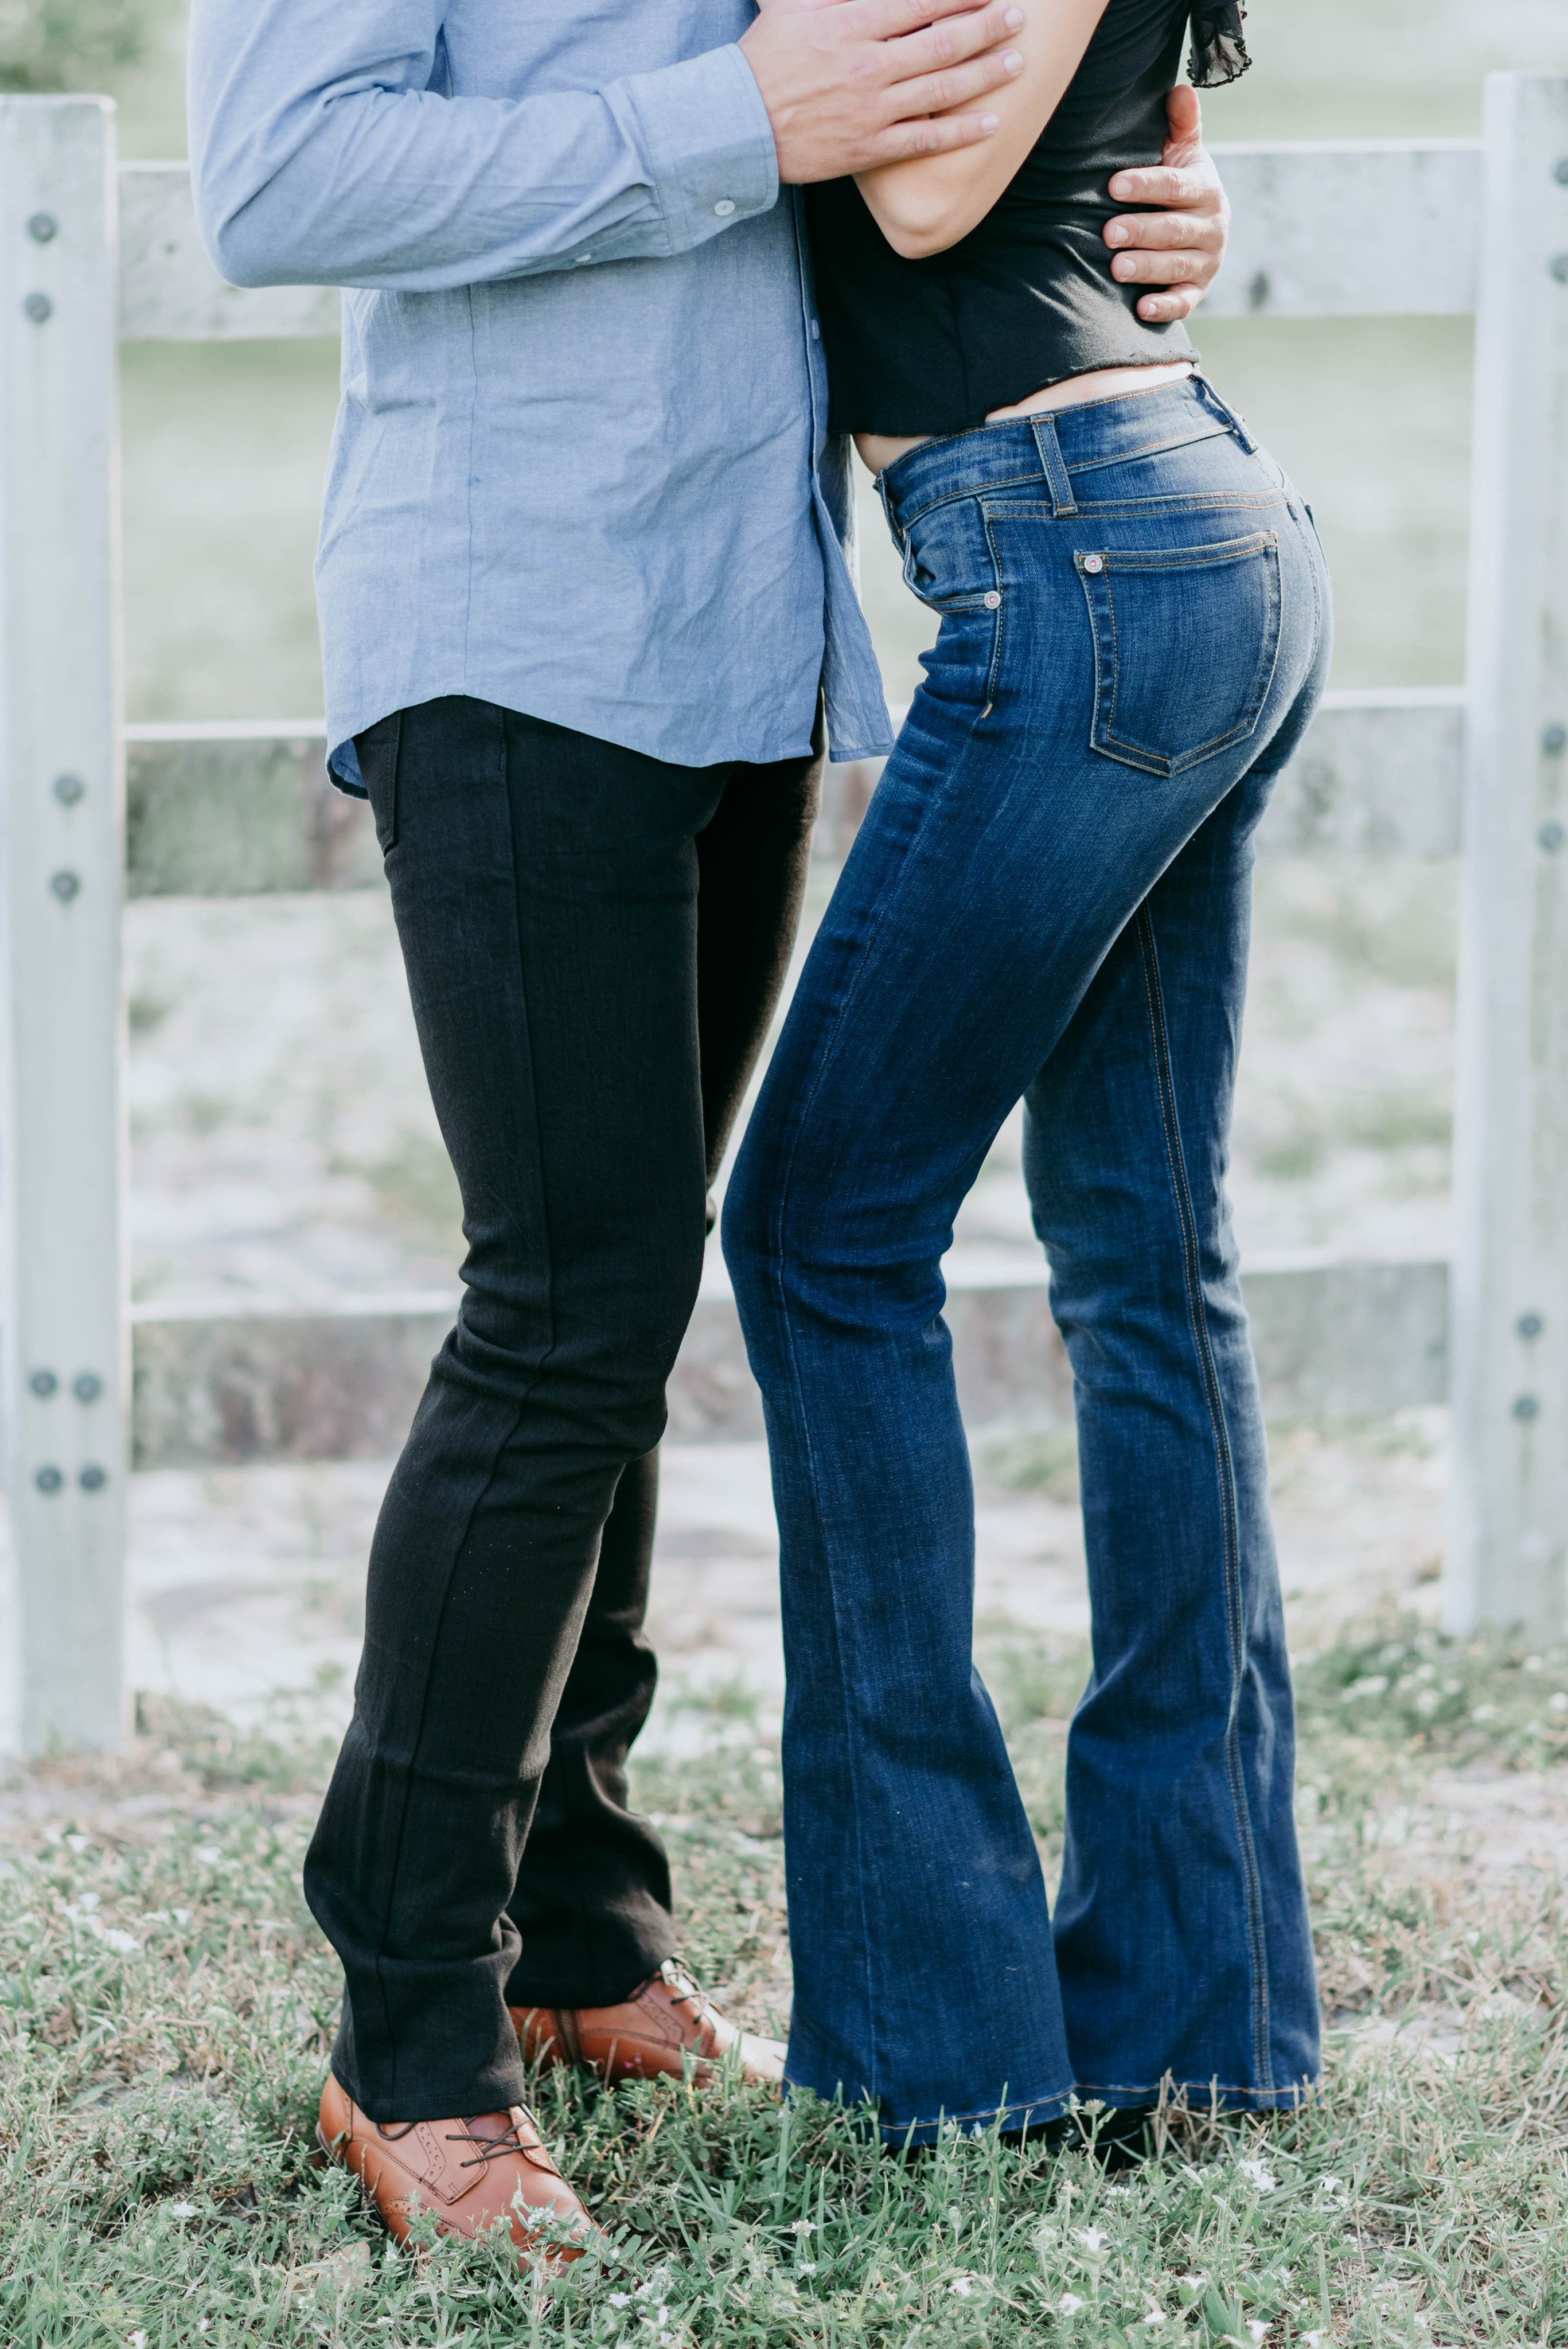 Dress your best with his and hers American-made denim - Bullet Blues